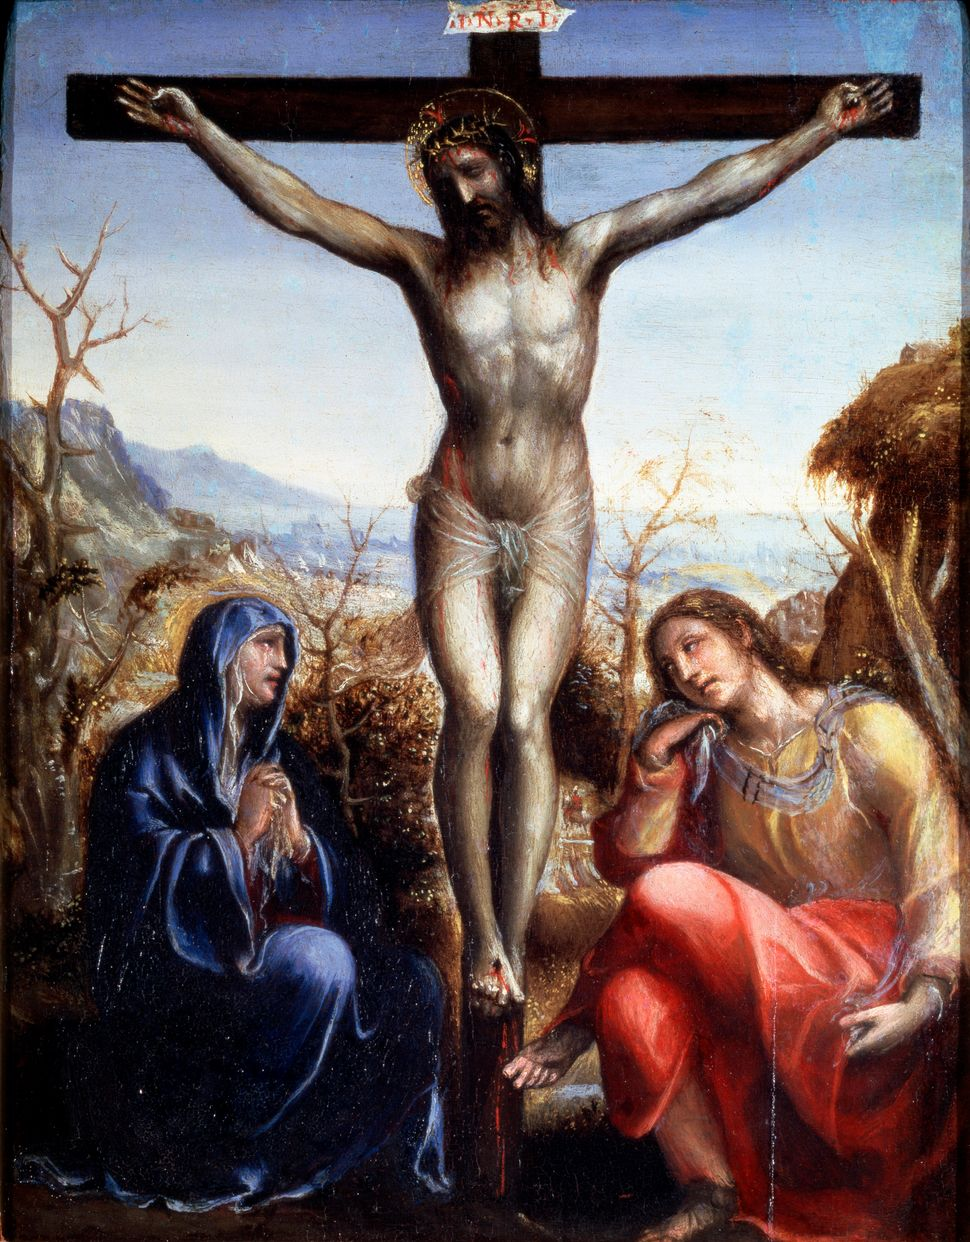 'The Crucifixion with the Virgin and John the Baptist', c1540. Found in the collection of the State A Pushkin Museum of Fine